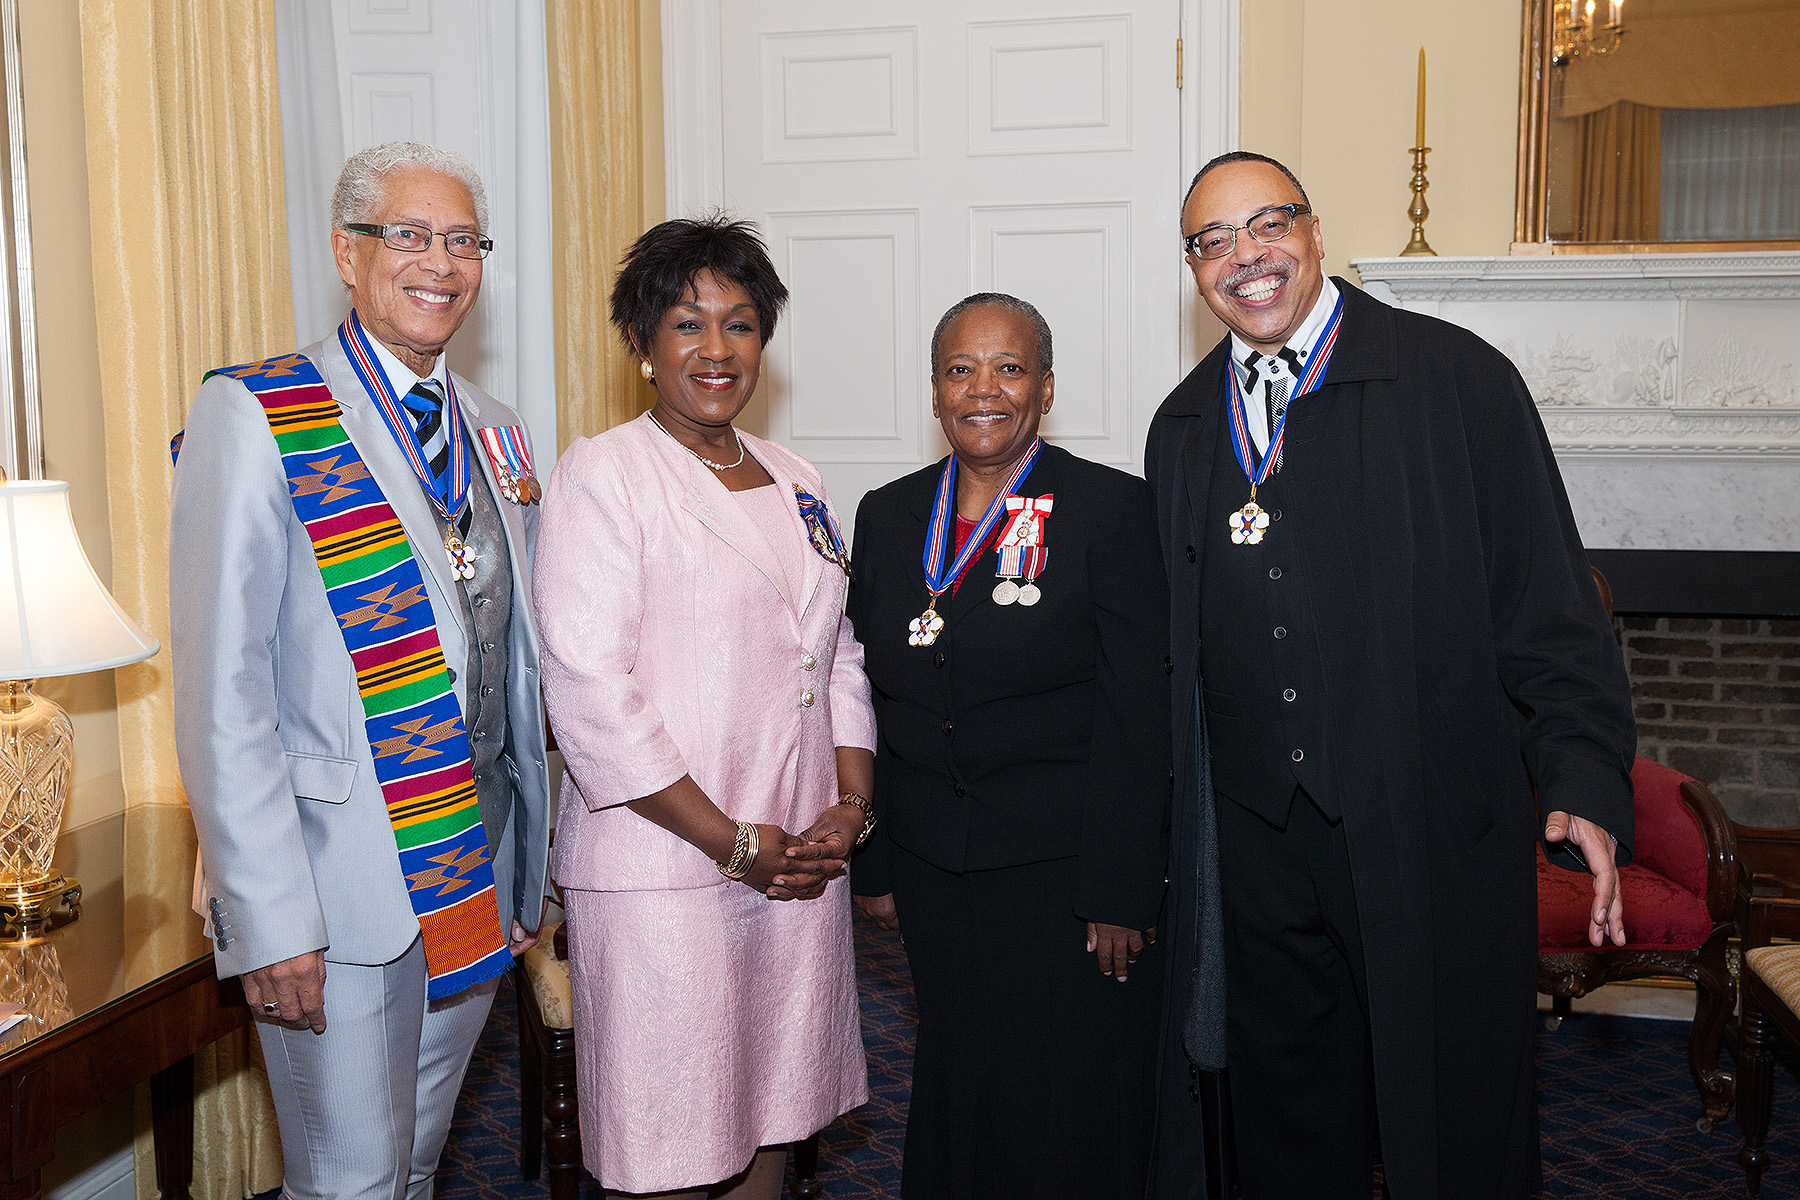 With poet Walter Borden, Hon, Mayann Francis (Lieutenant-Governor of Nova Scotia), and Dr. Wanda Thomas Bernard, at the Order of Nova Scotia ceremony, 2014.